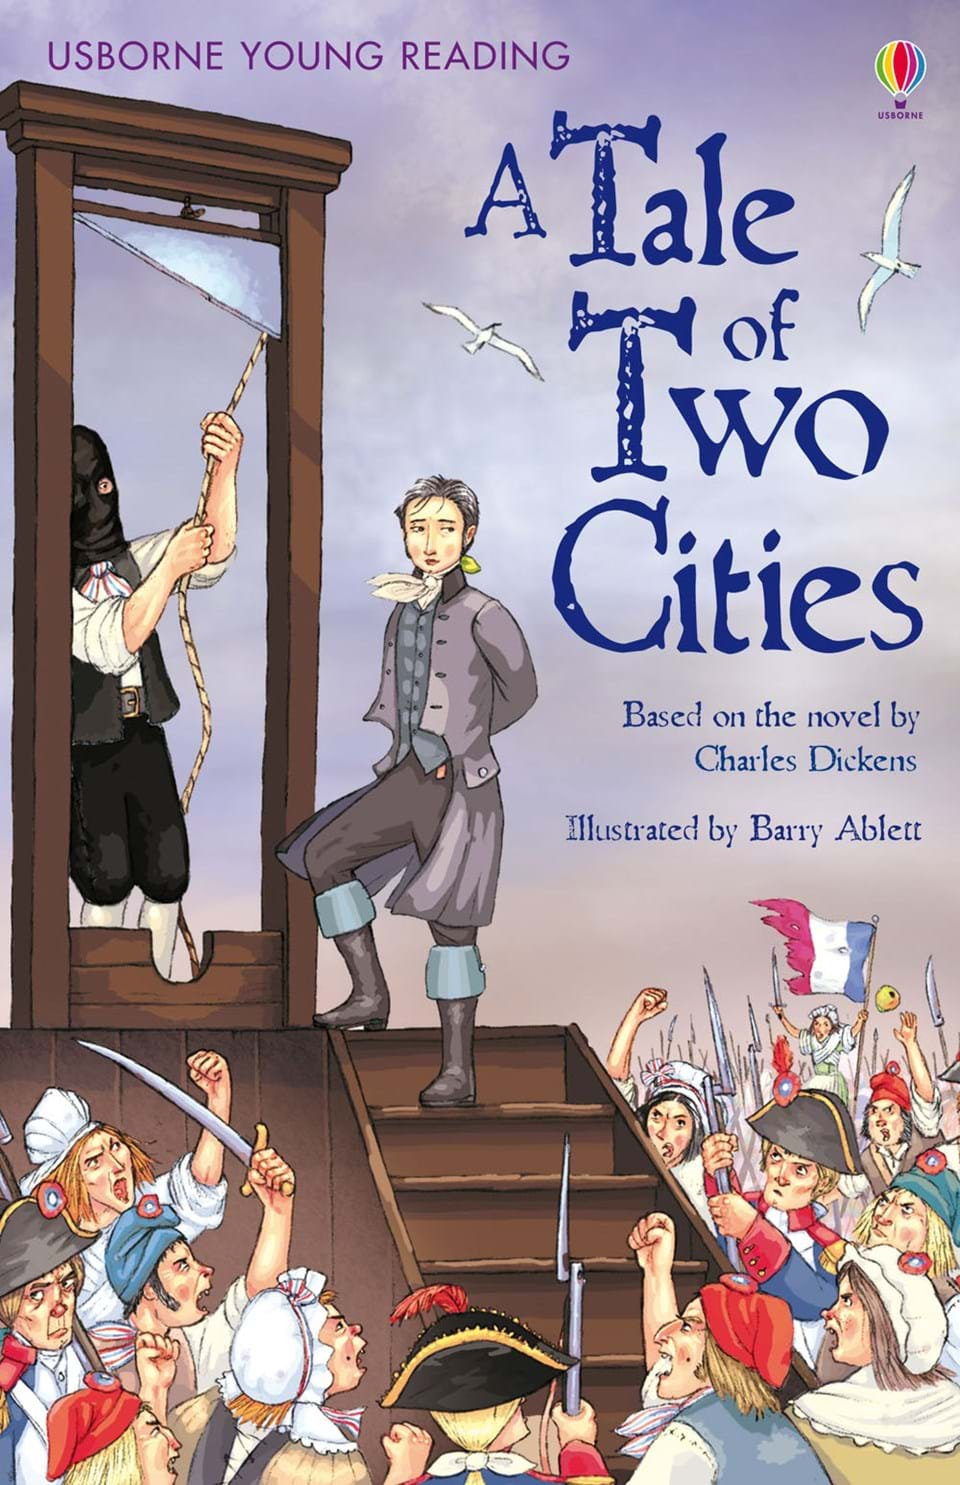 Book: A Tale of Two Cities